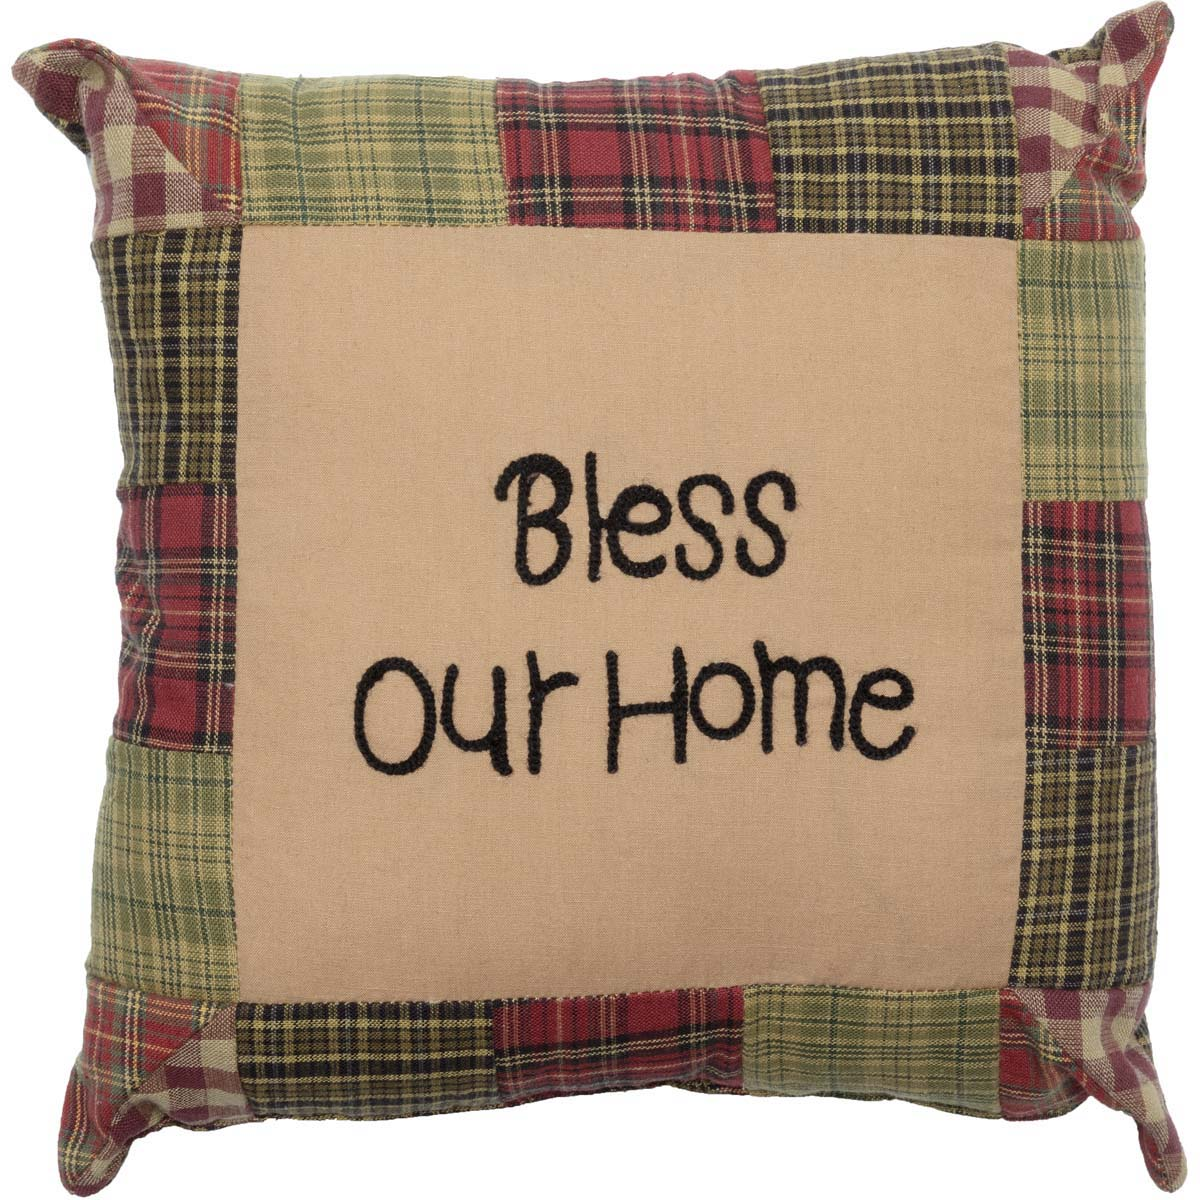 Tea Cabin Pillow Bless Our Home 10x10